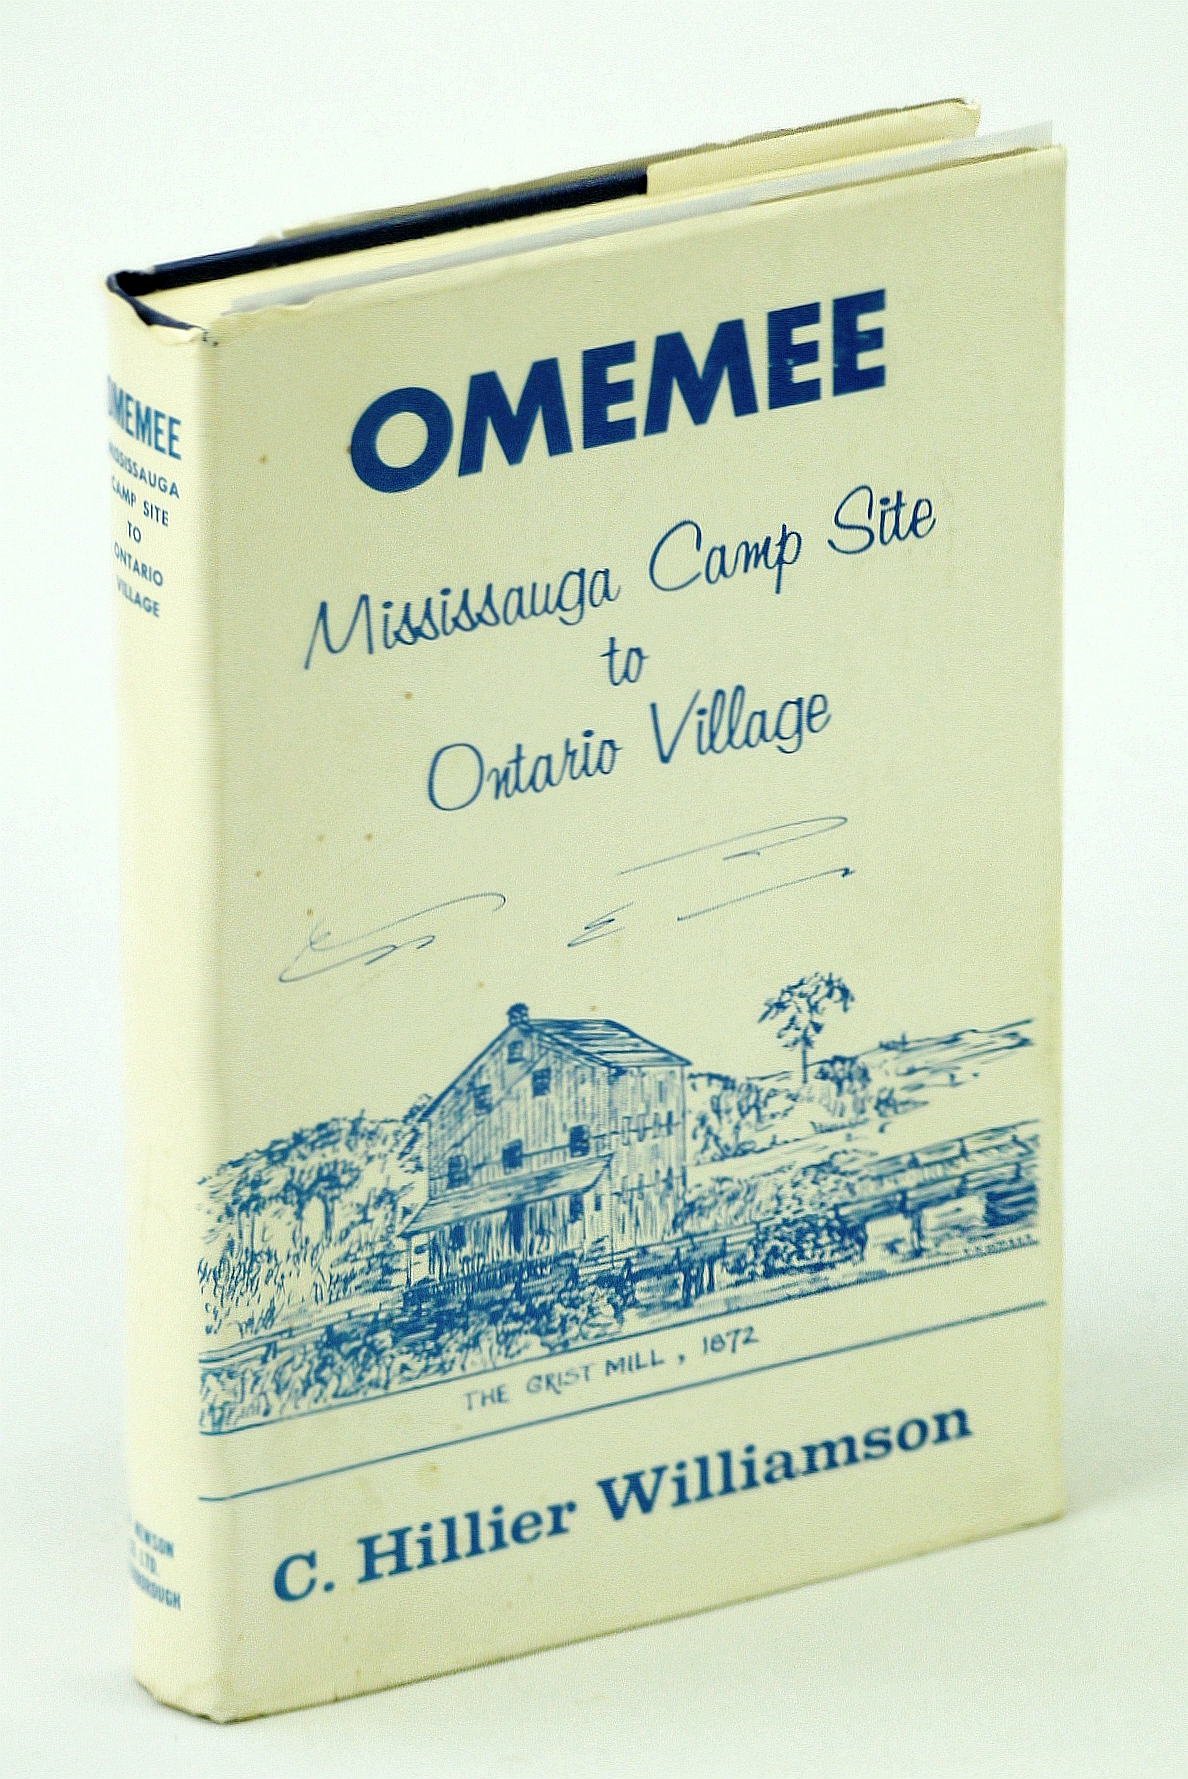 Image for OMEMEE: Mississauga Camp Site to Ontario Village